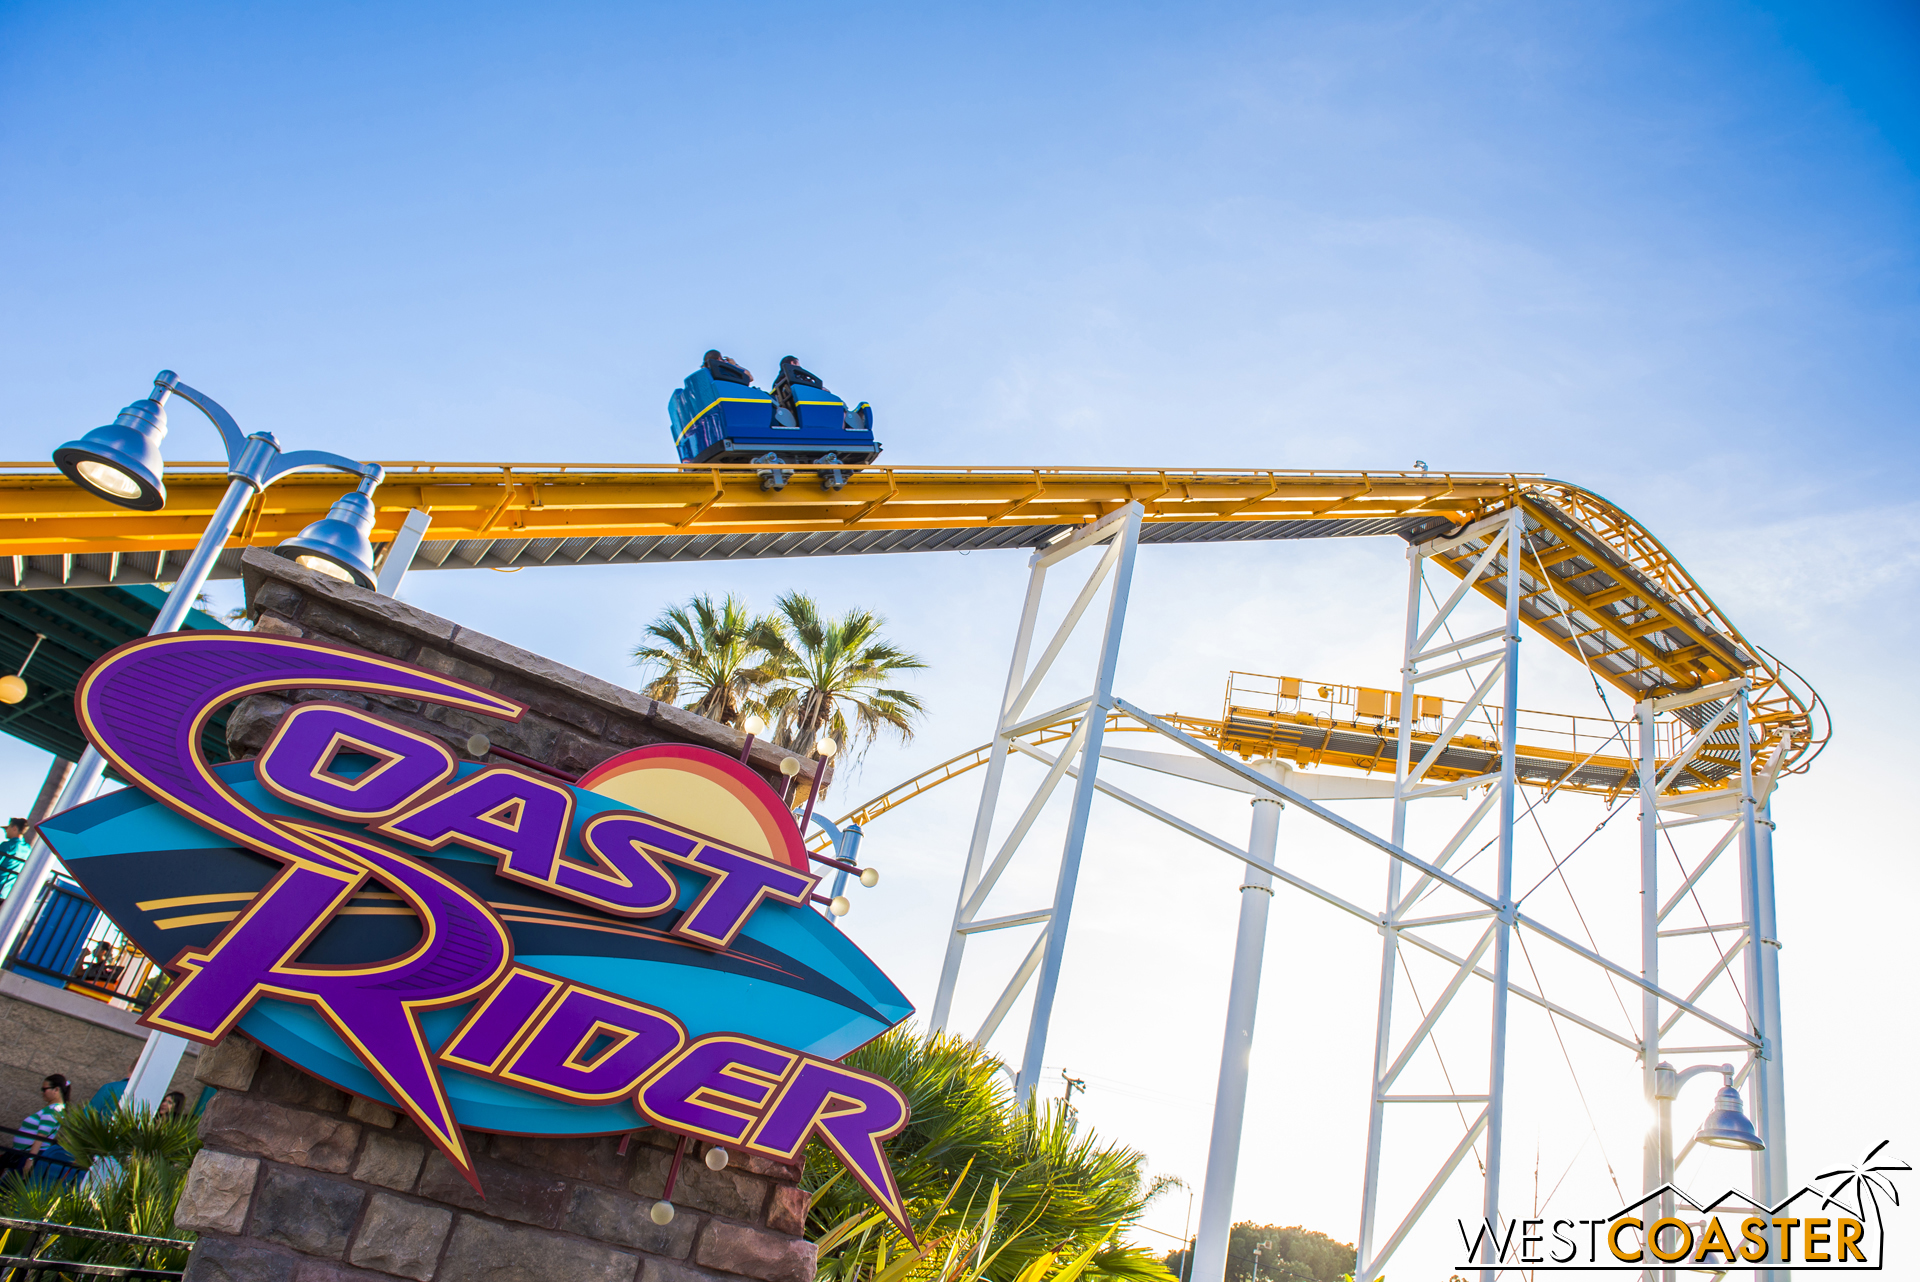 I didn't ride Coast Rider to take actual photos of the change...